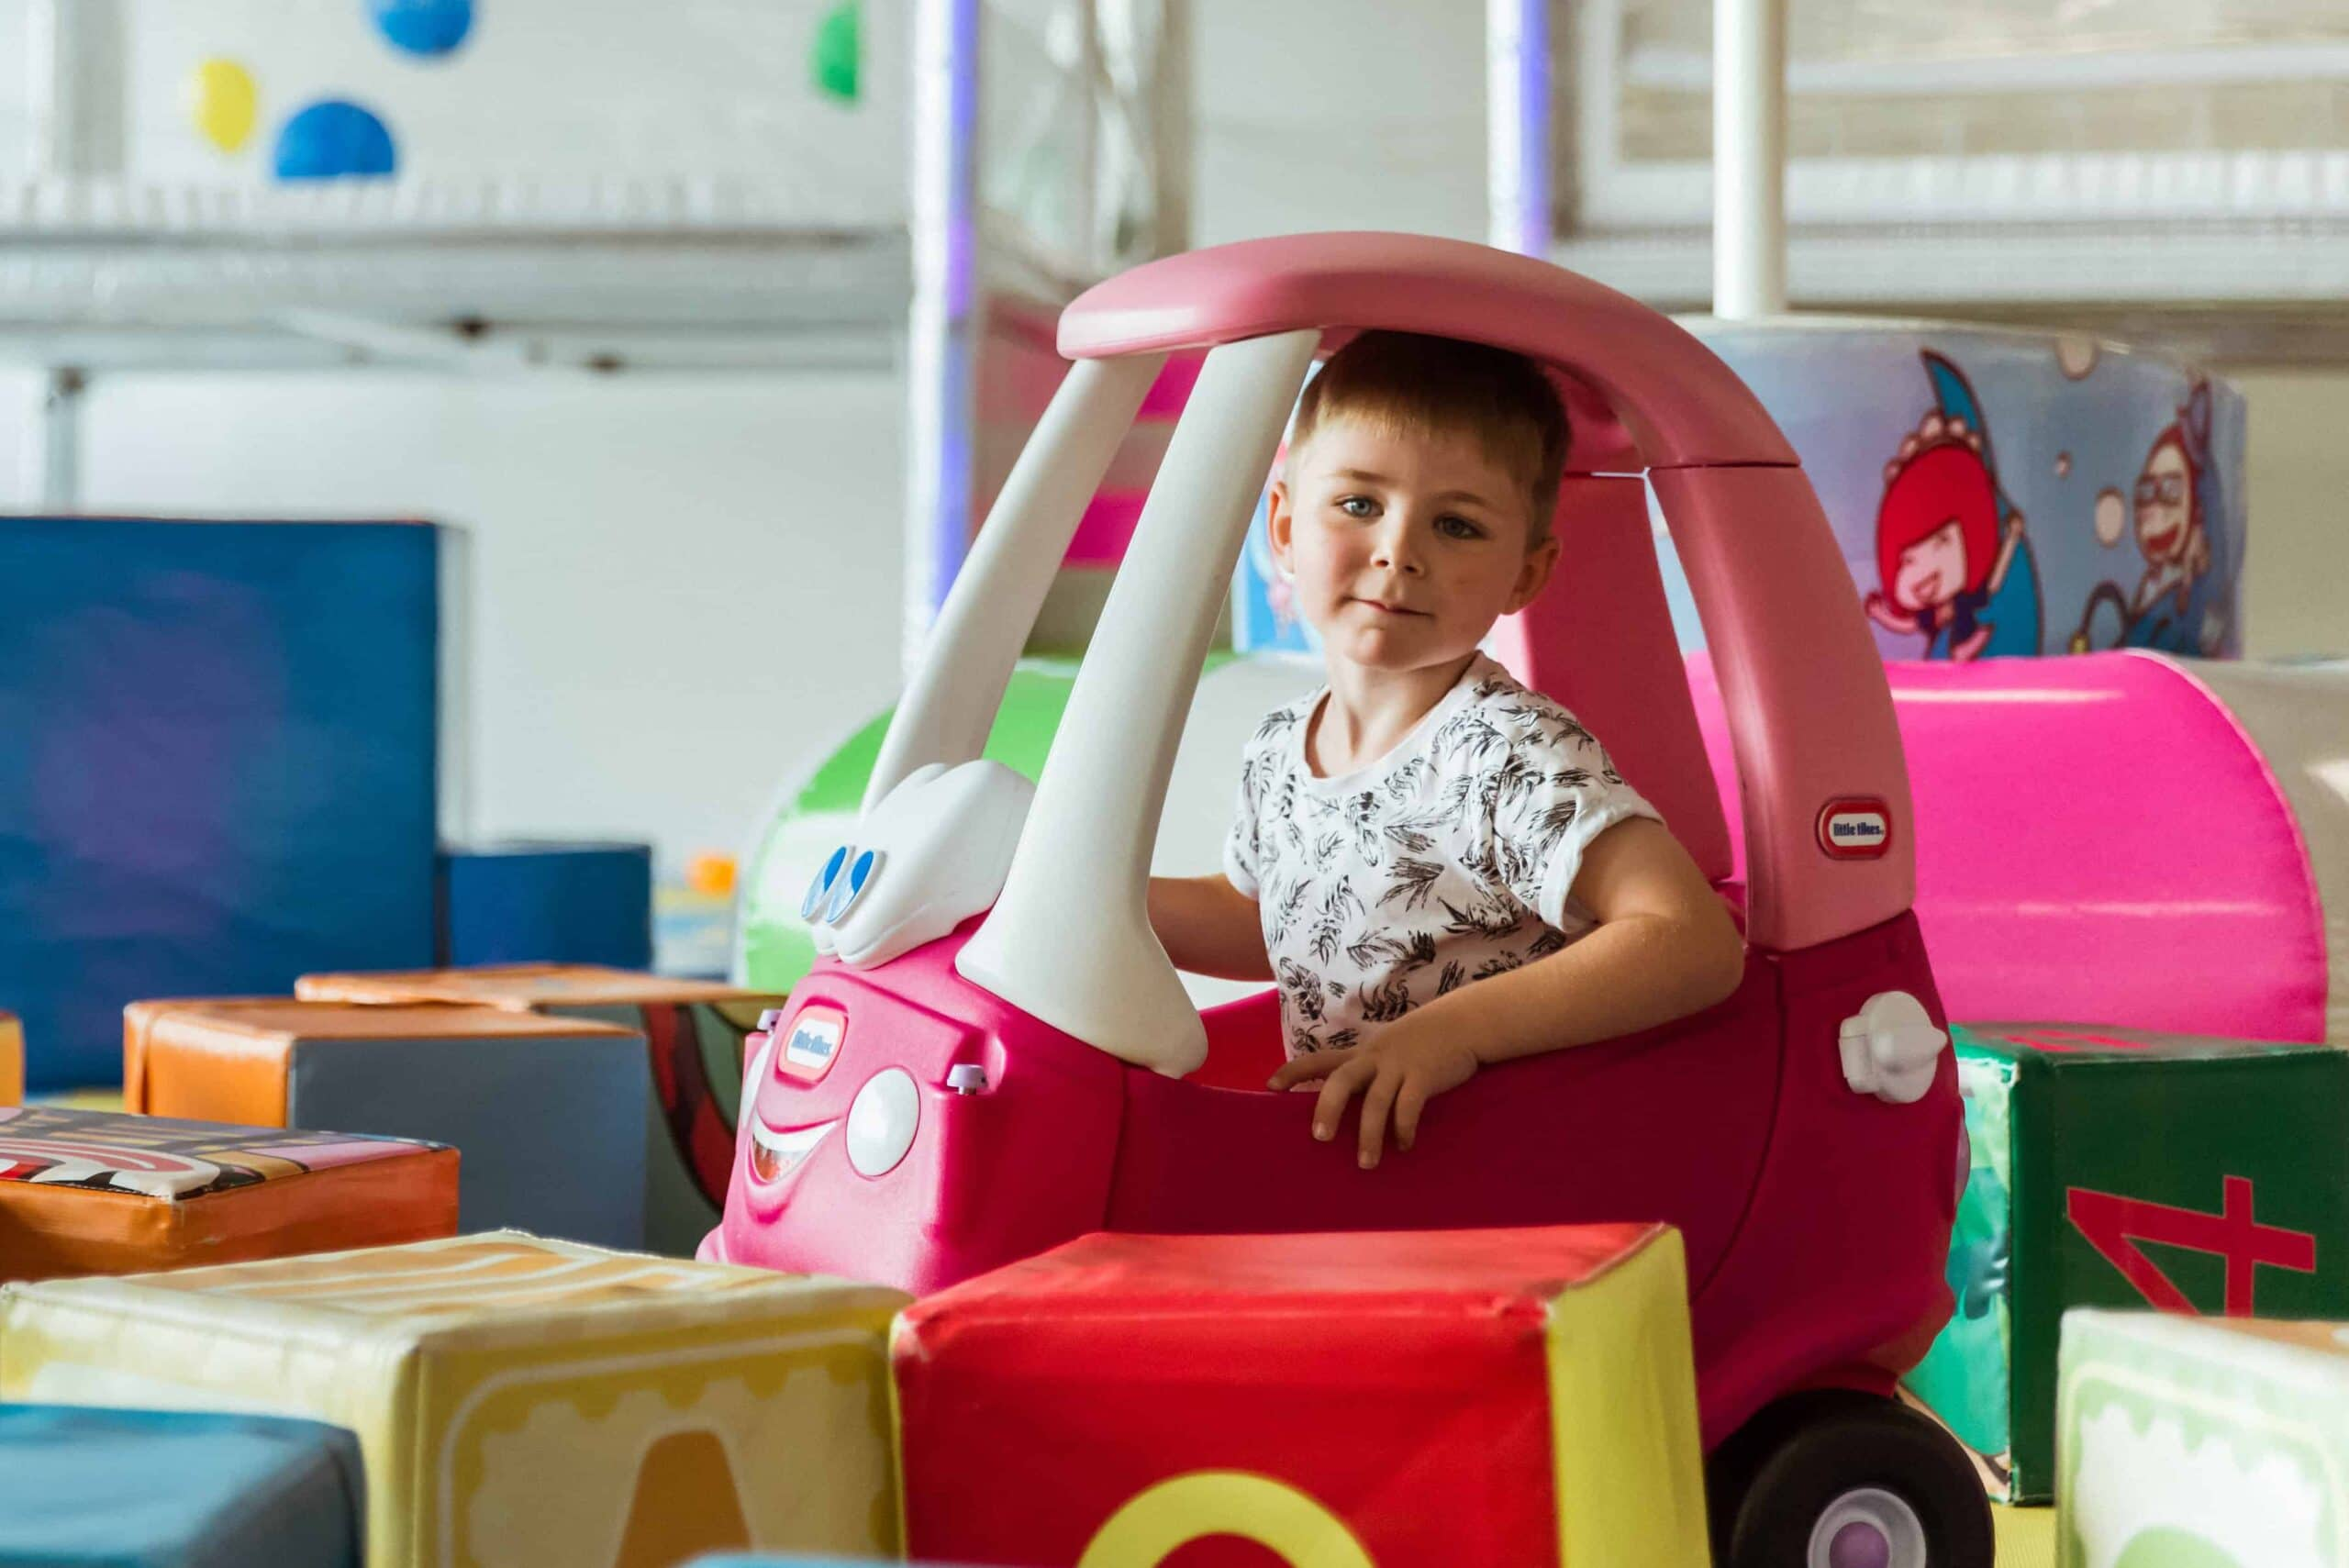 How can soft play help your child's motor skills develop?